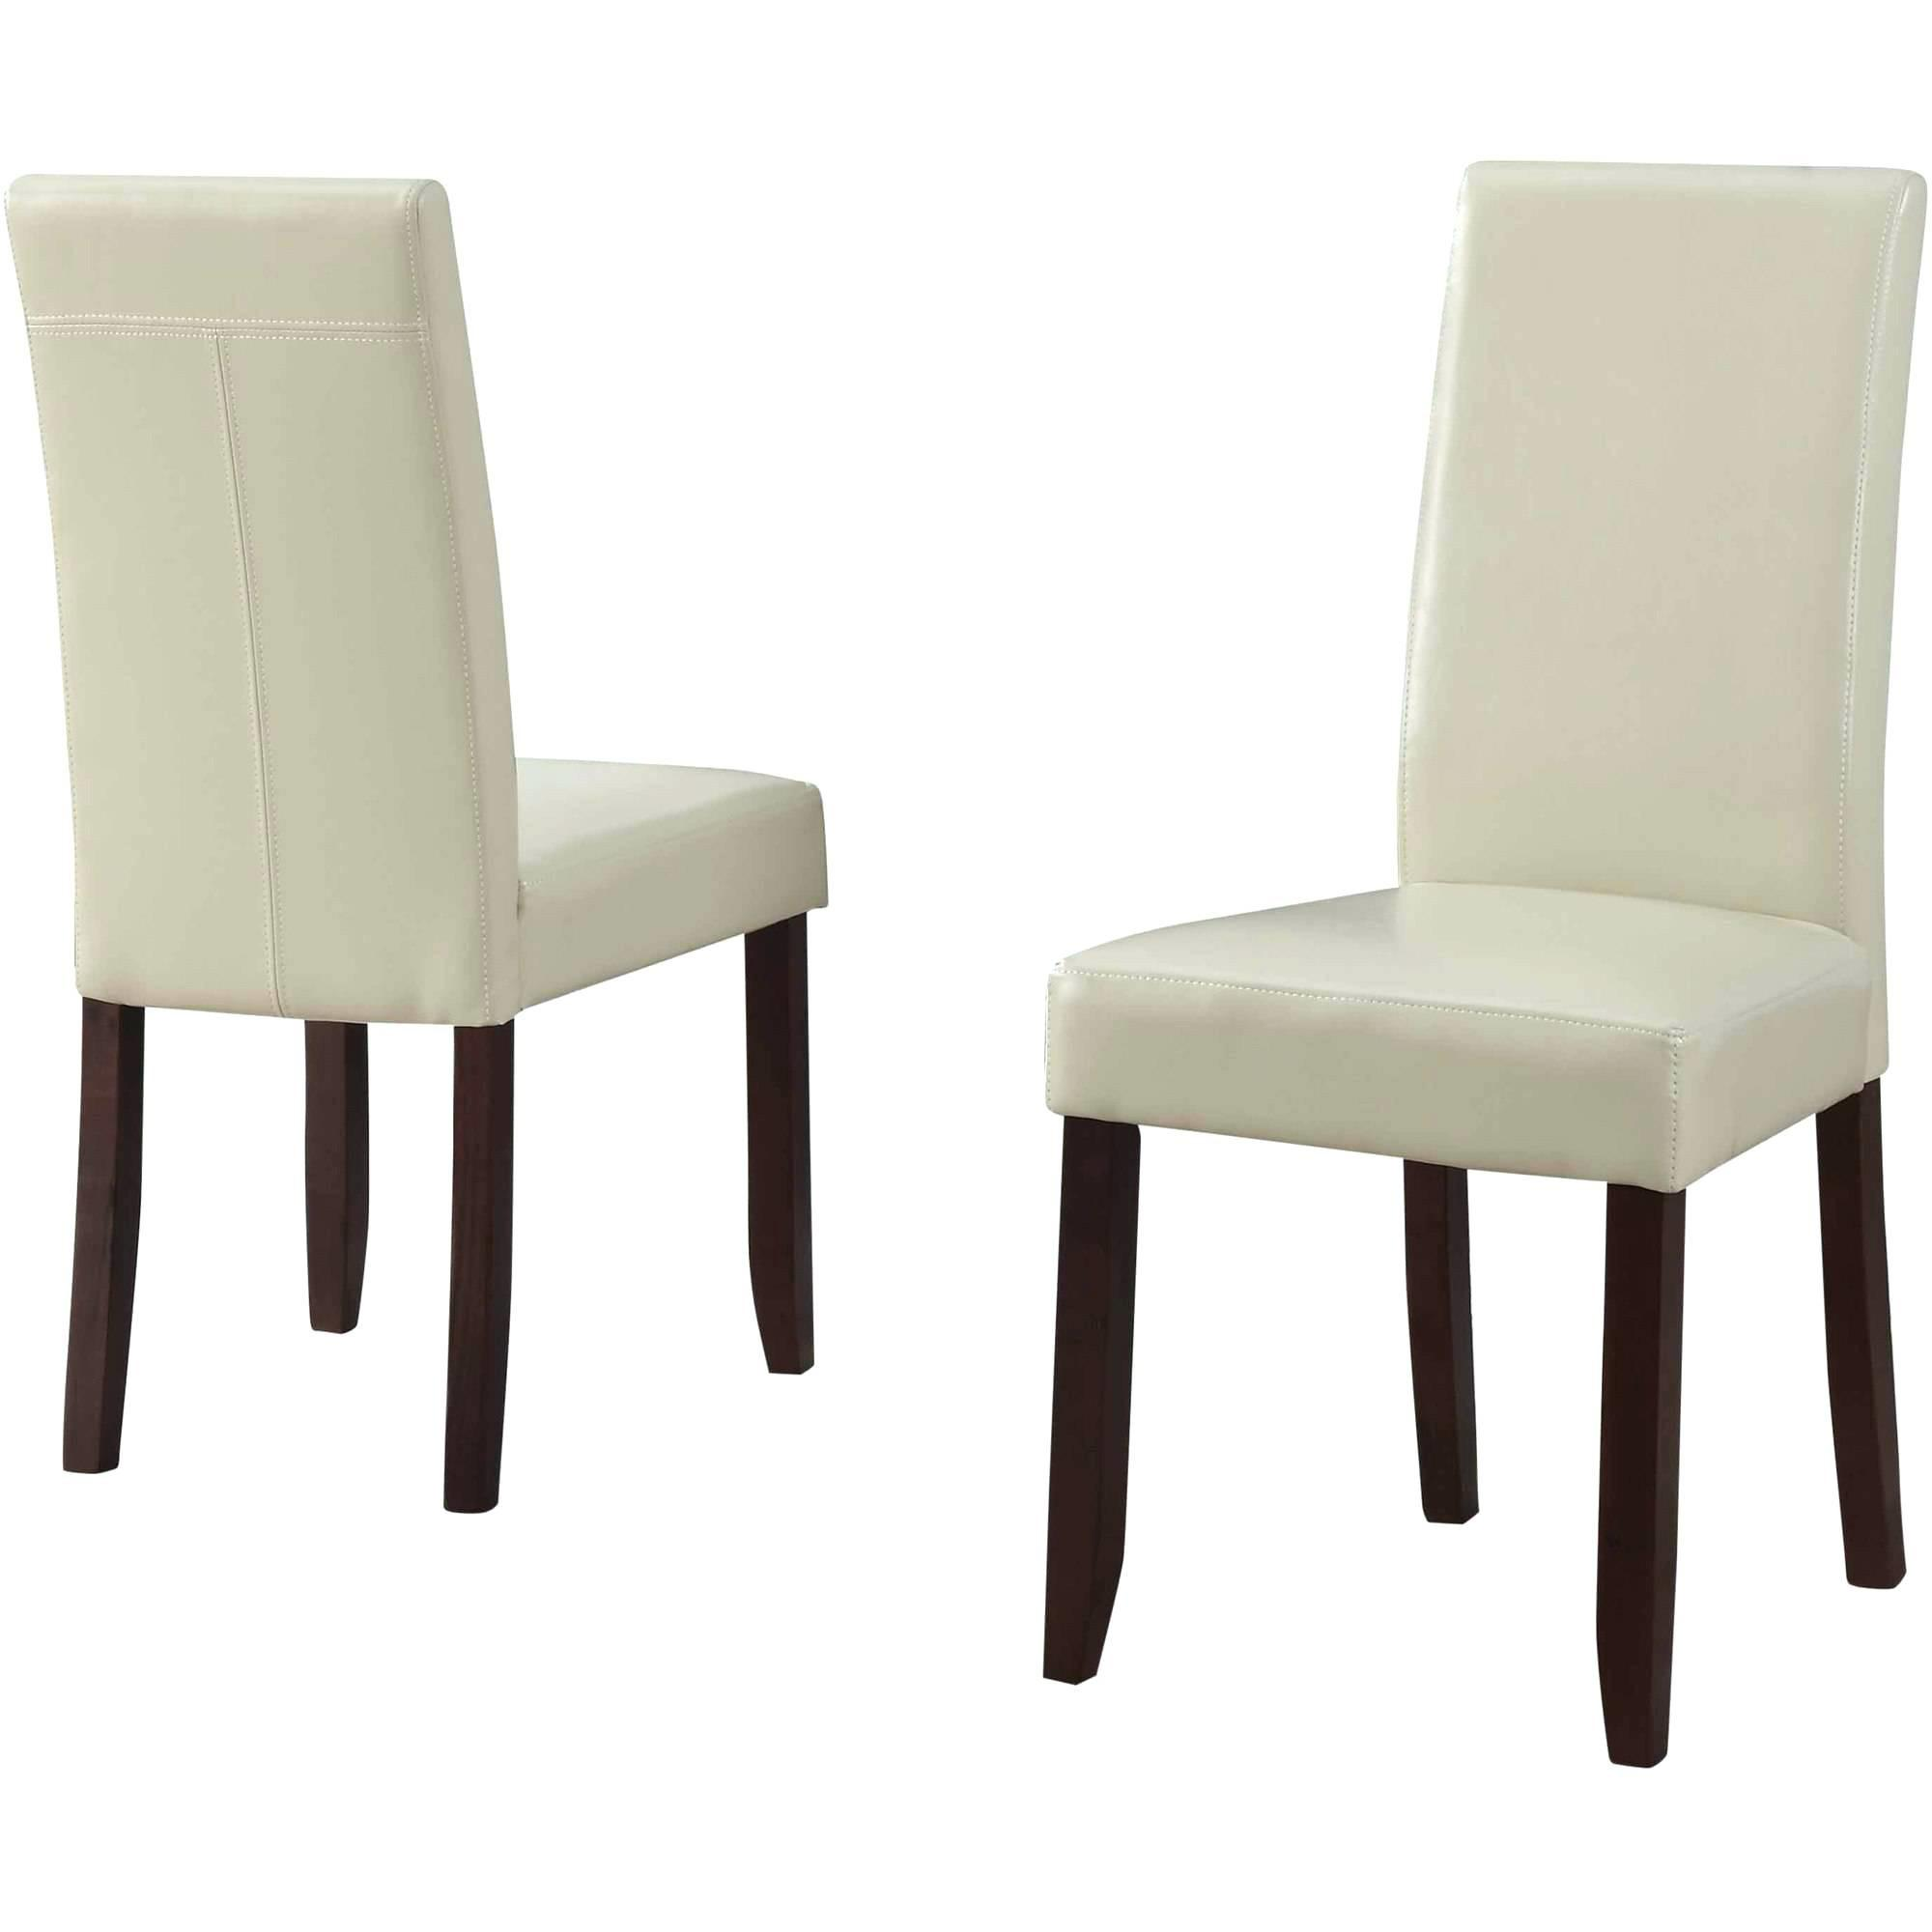 White Washed Dining Room Chairs Wash Table Set Whitewashed